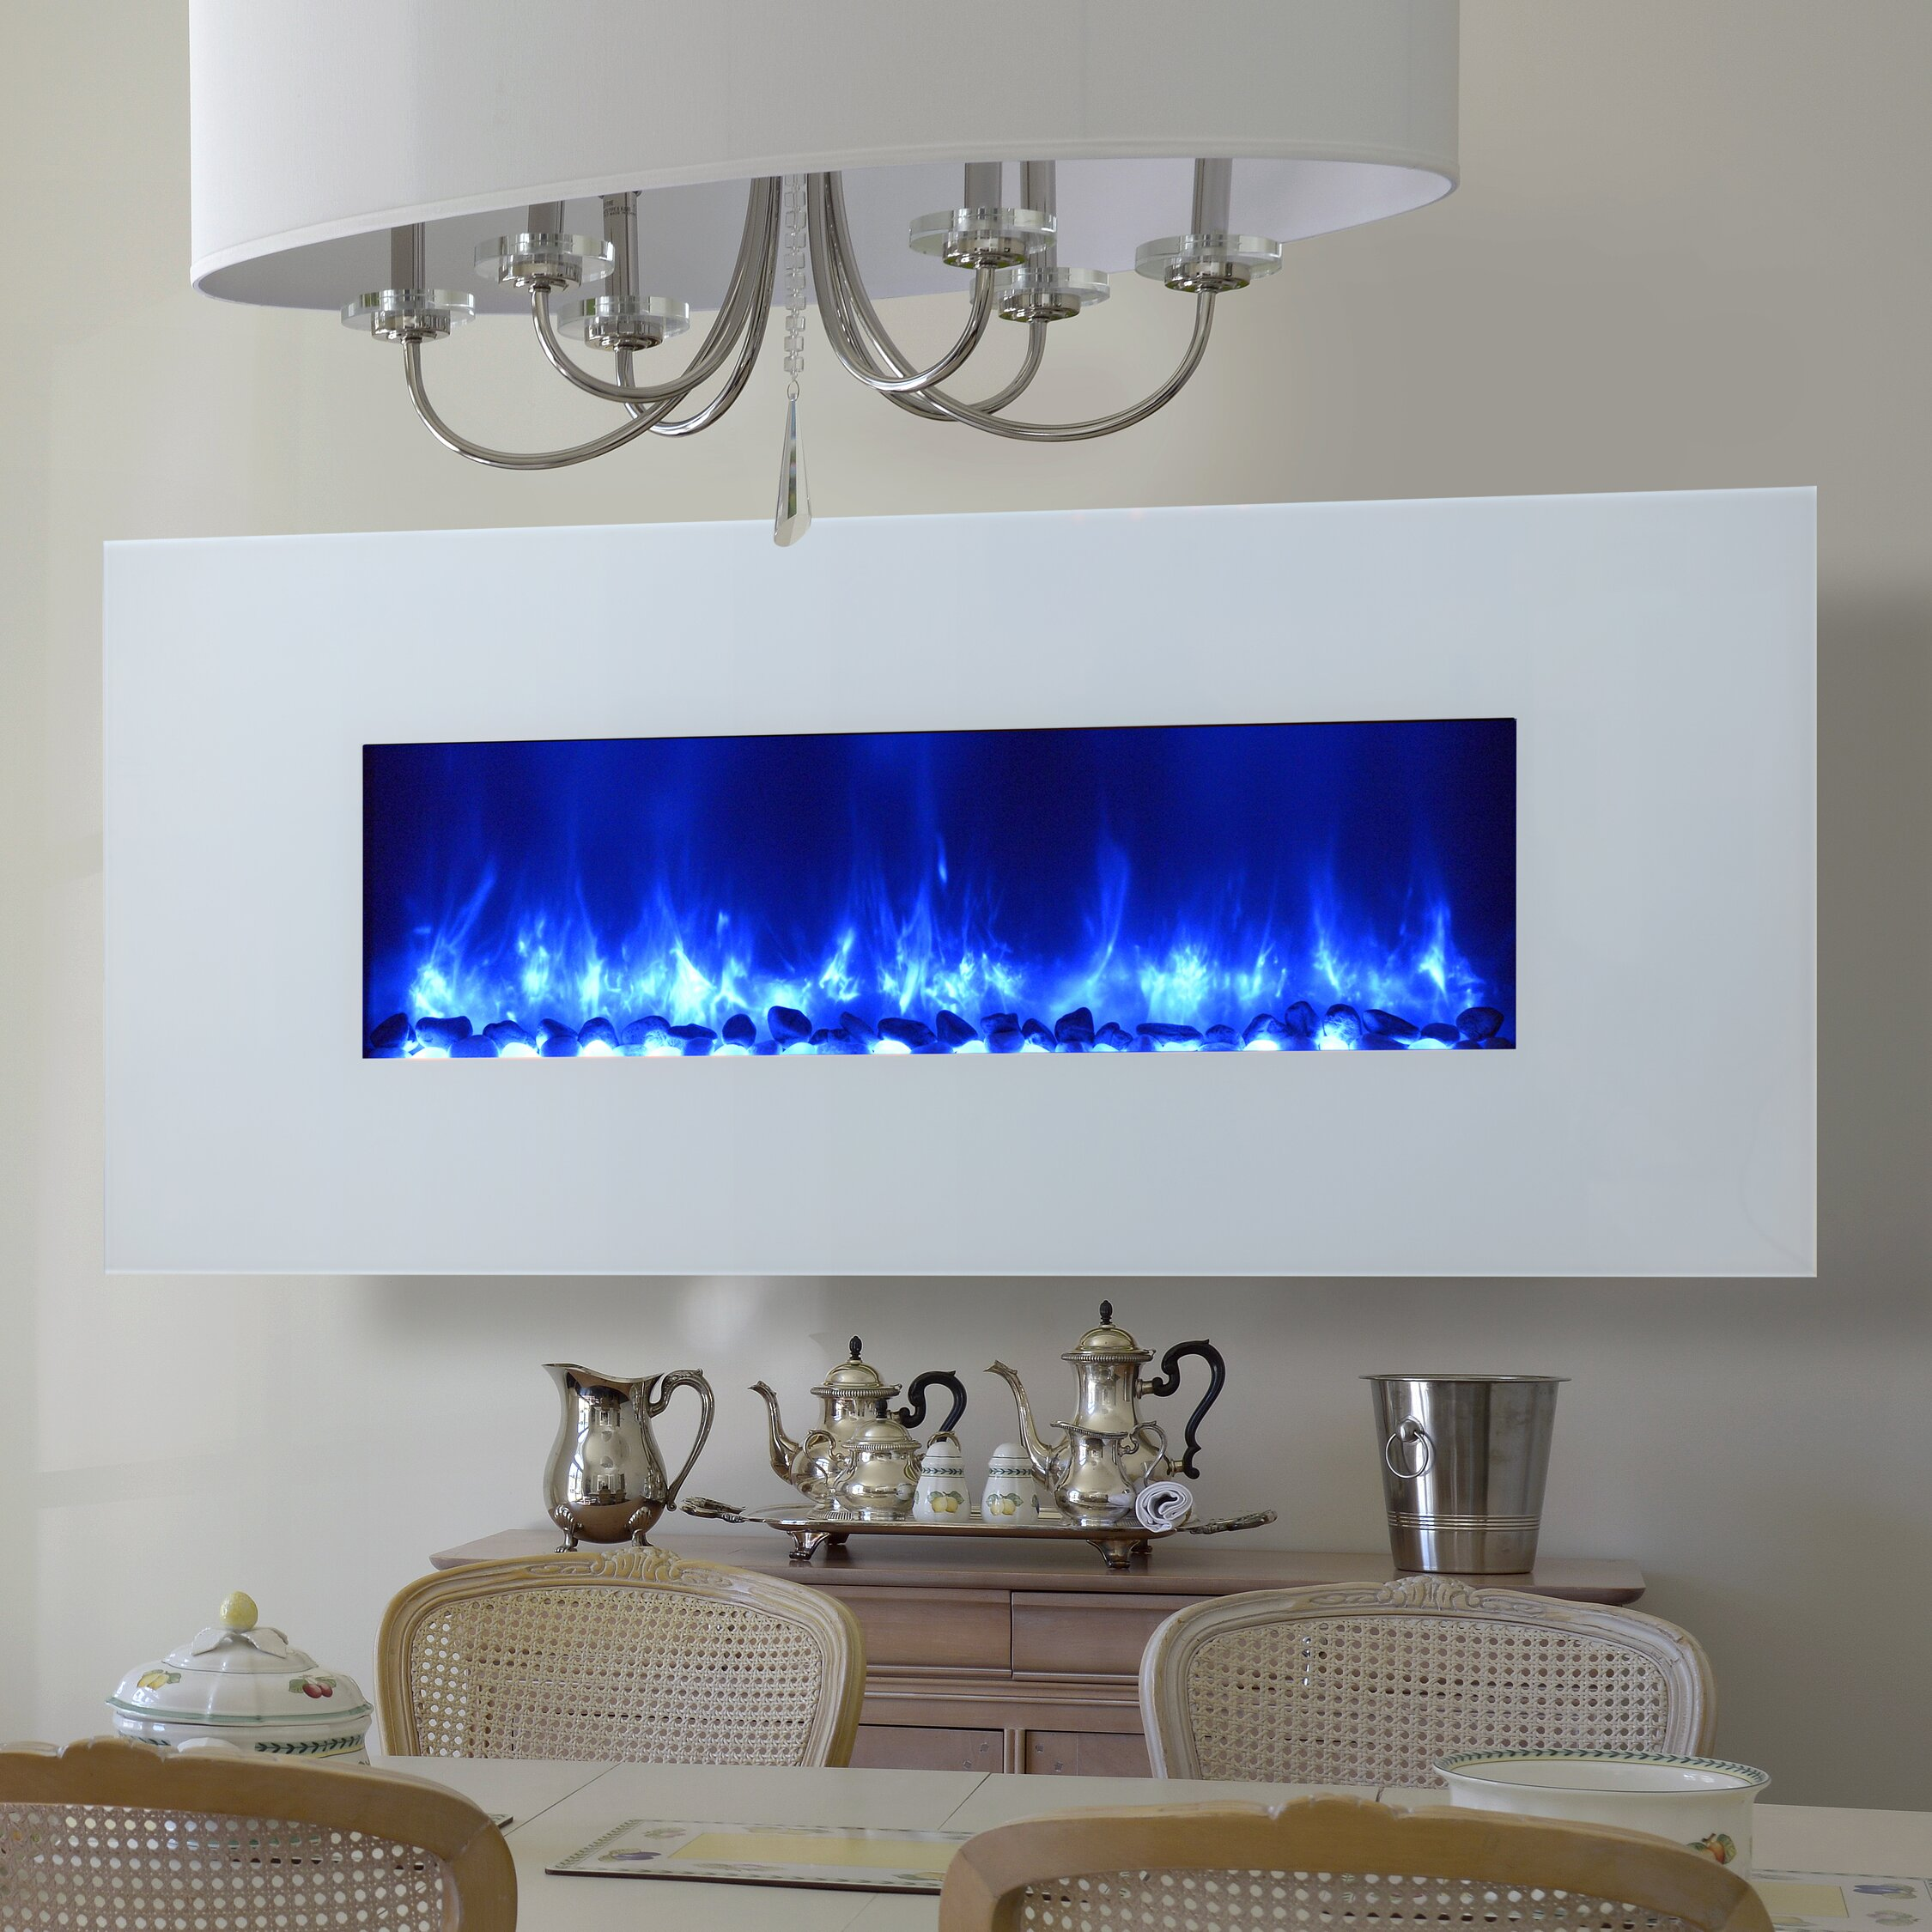 Wall Mount Fireplace In Living Room